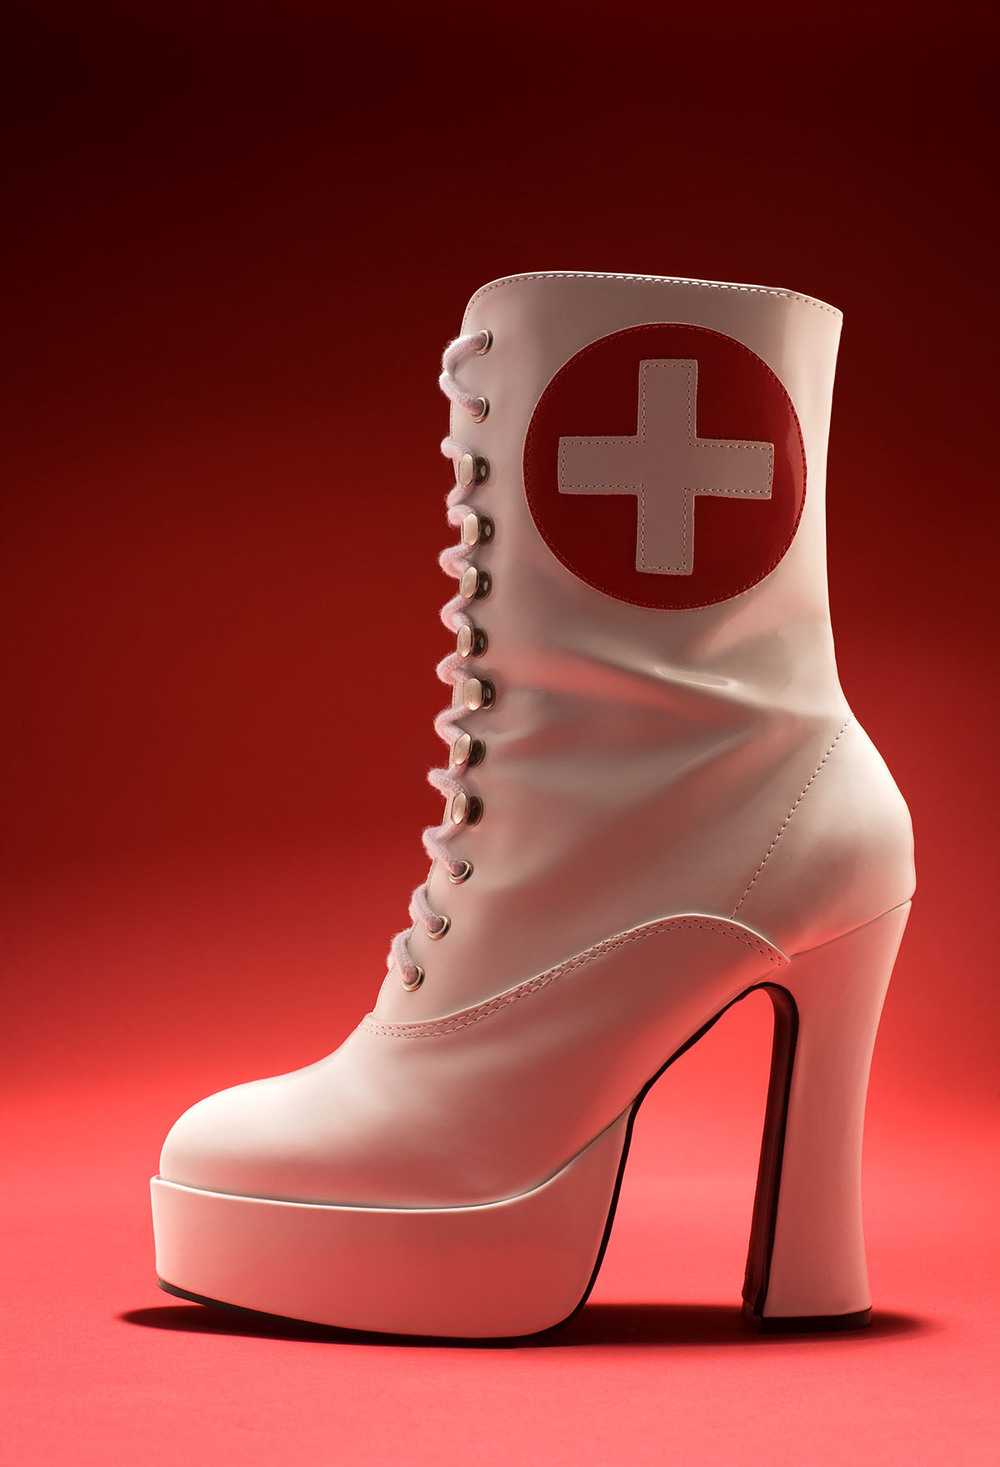 nurse_boot_glamour-754113.jpg